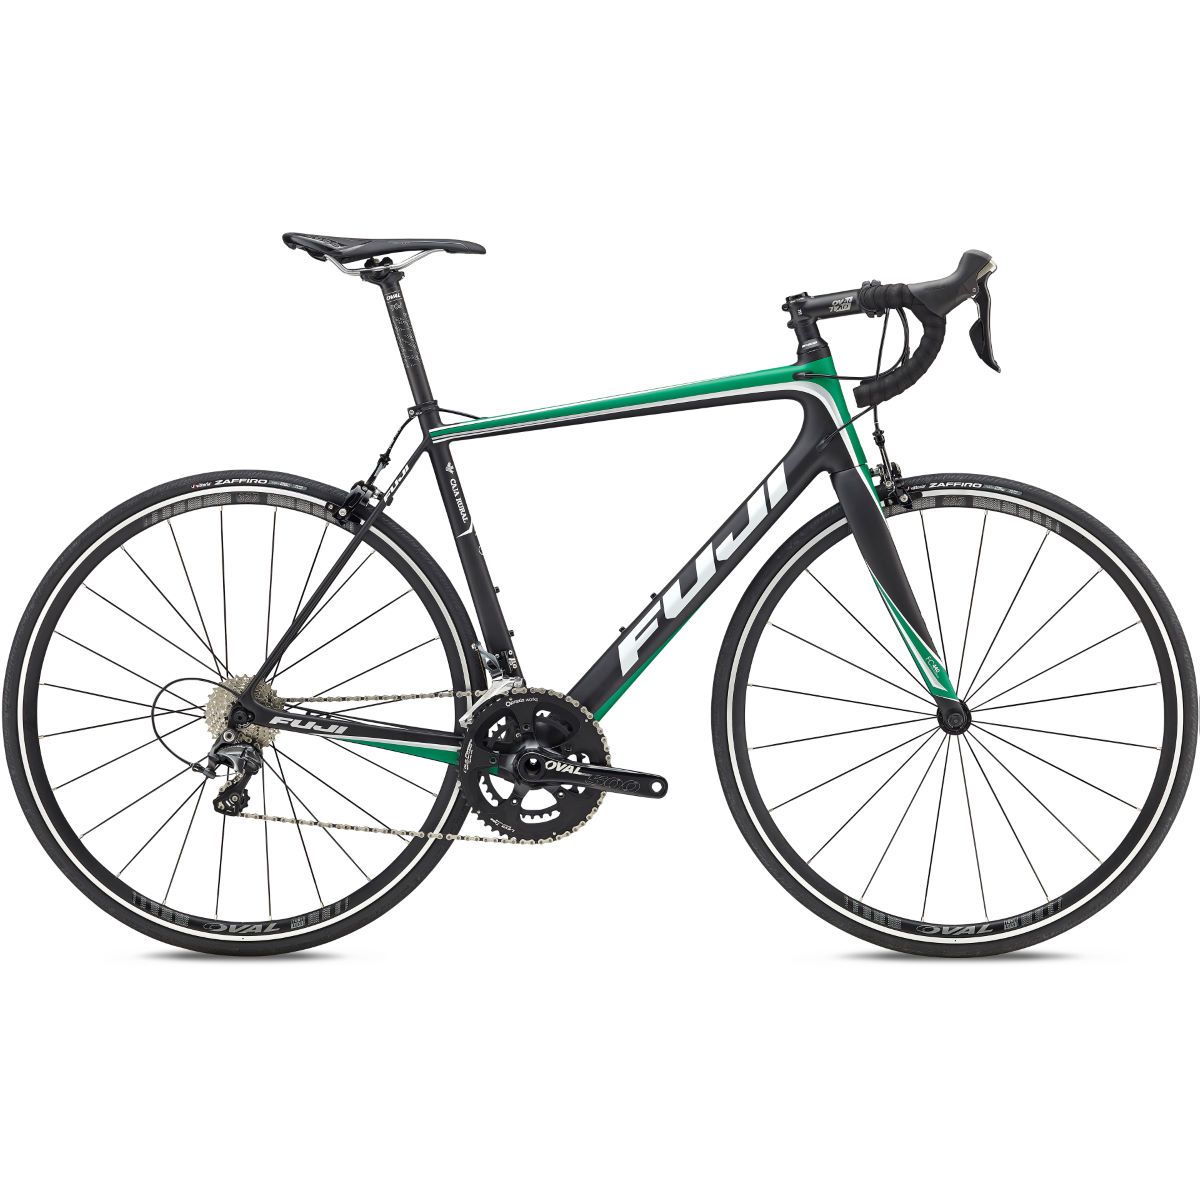 Fuji Fuji SL Team Replica Road Bike (hotlines sample) - Bicicletas de carretera